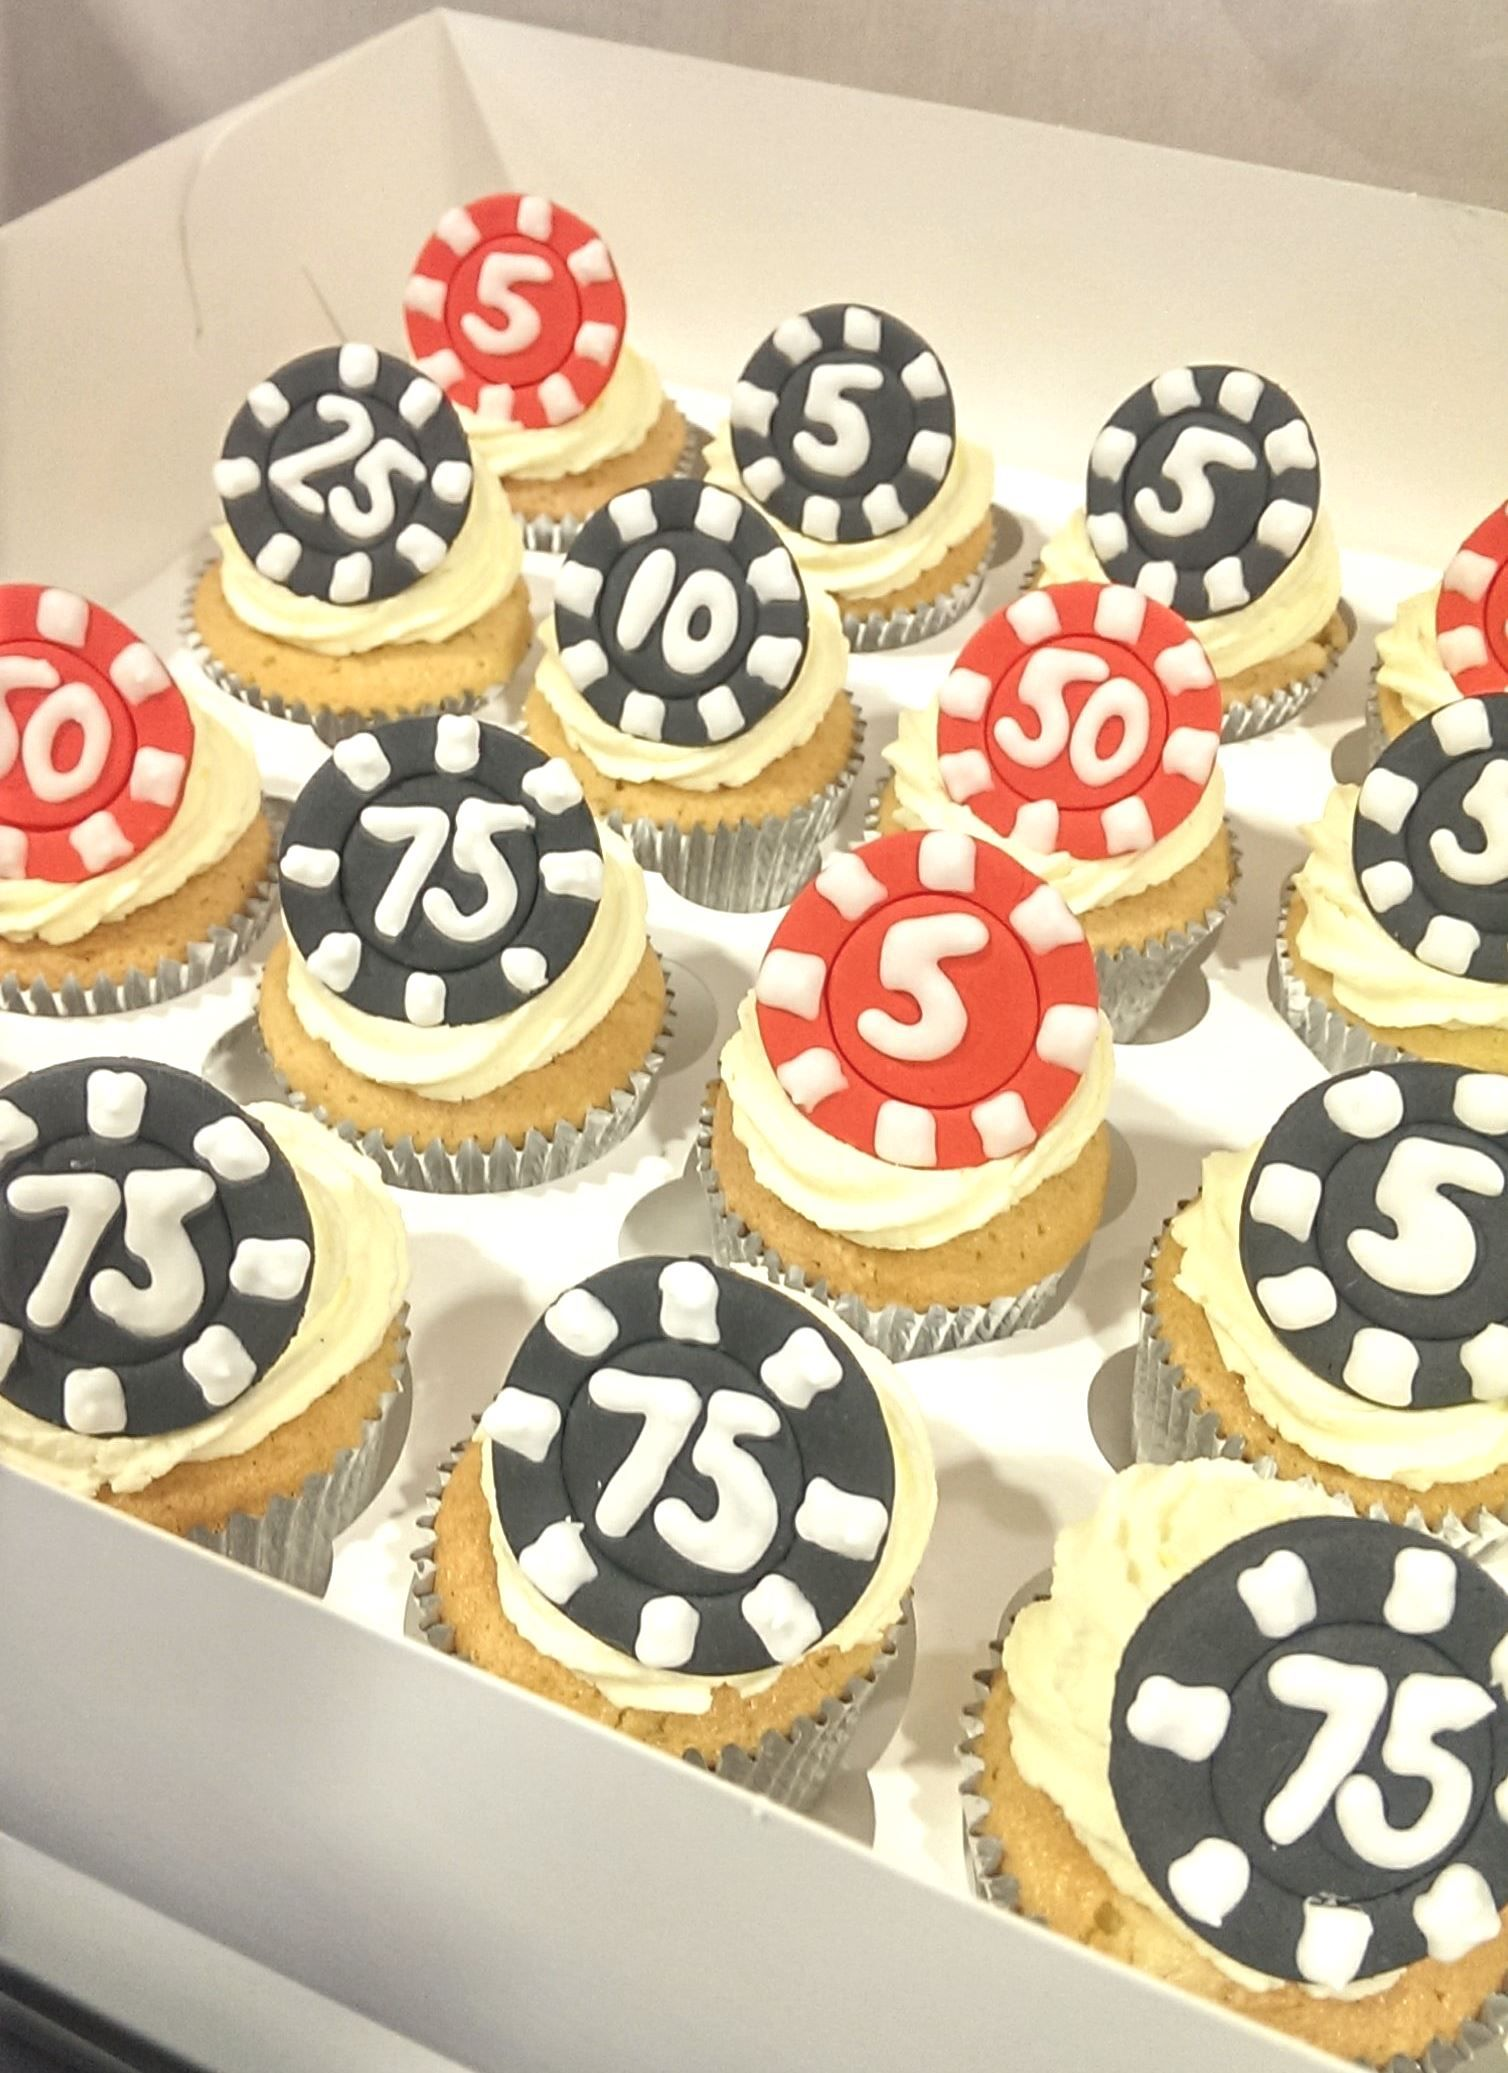 150 Chip Cupcakes For A Las Vegas Themed Wedding Now This Was